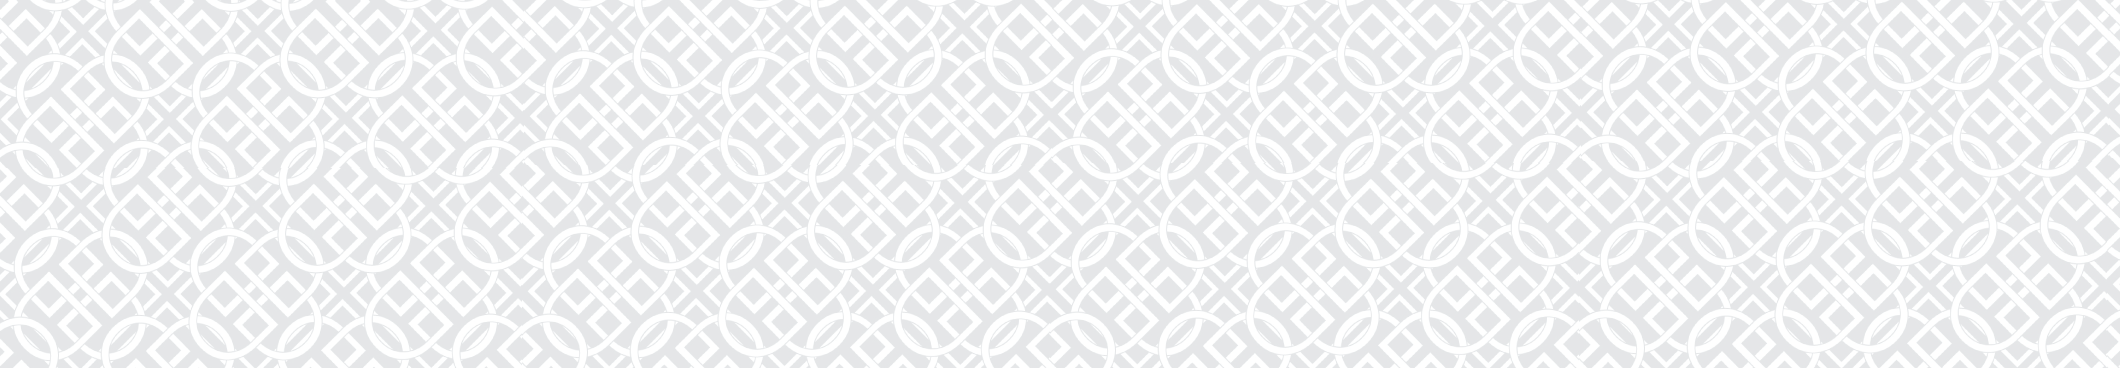 Drexel-Design-Studio-Pattern